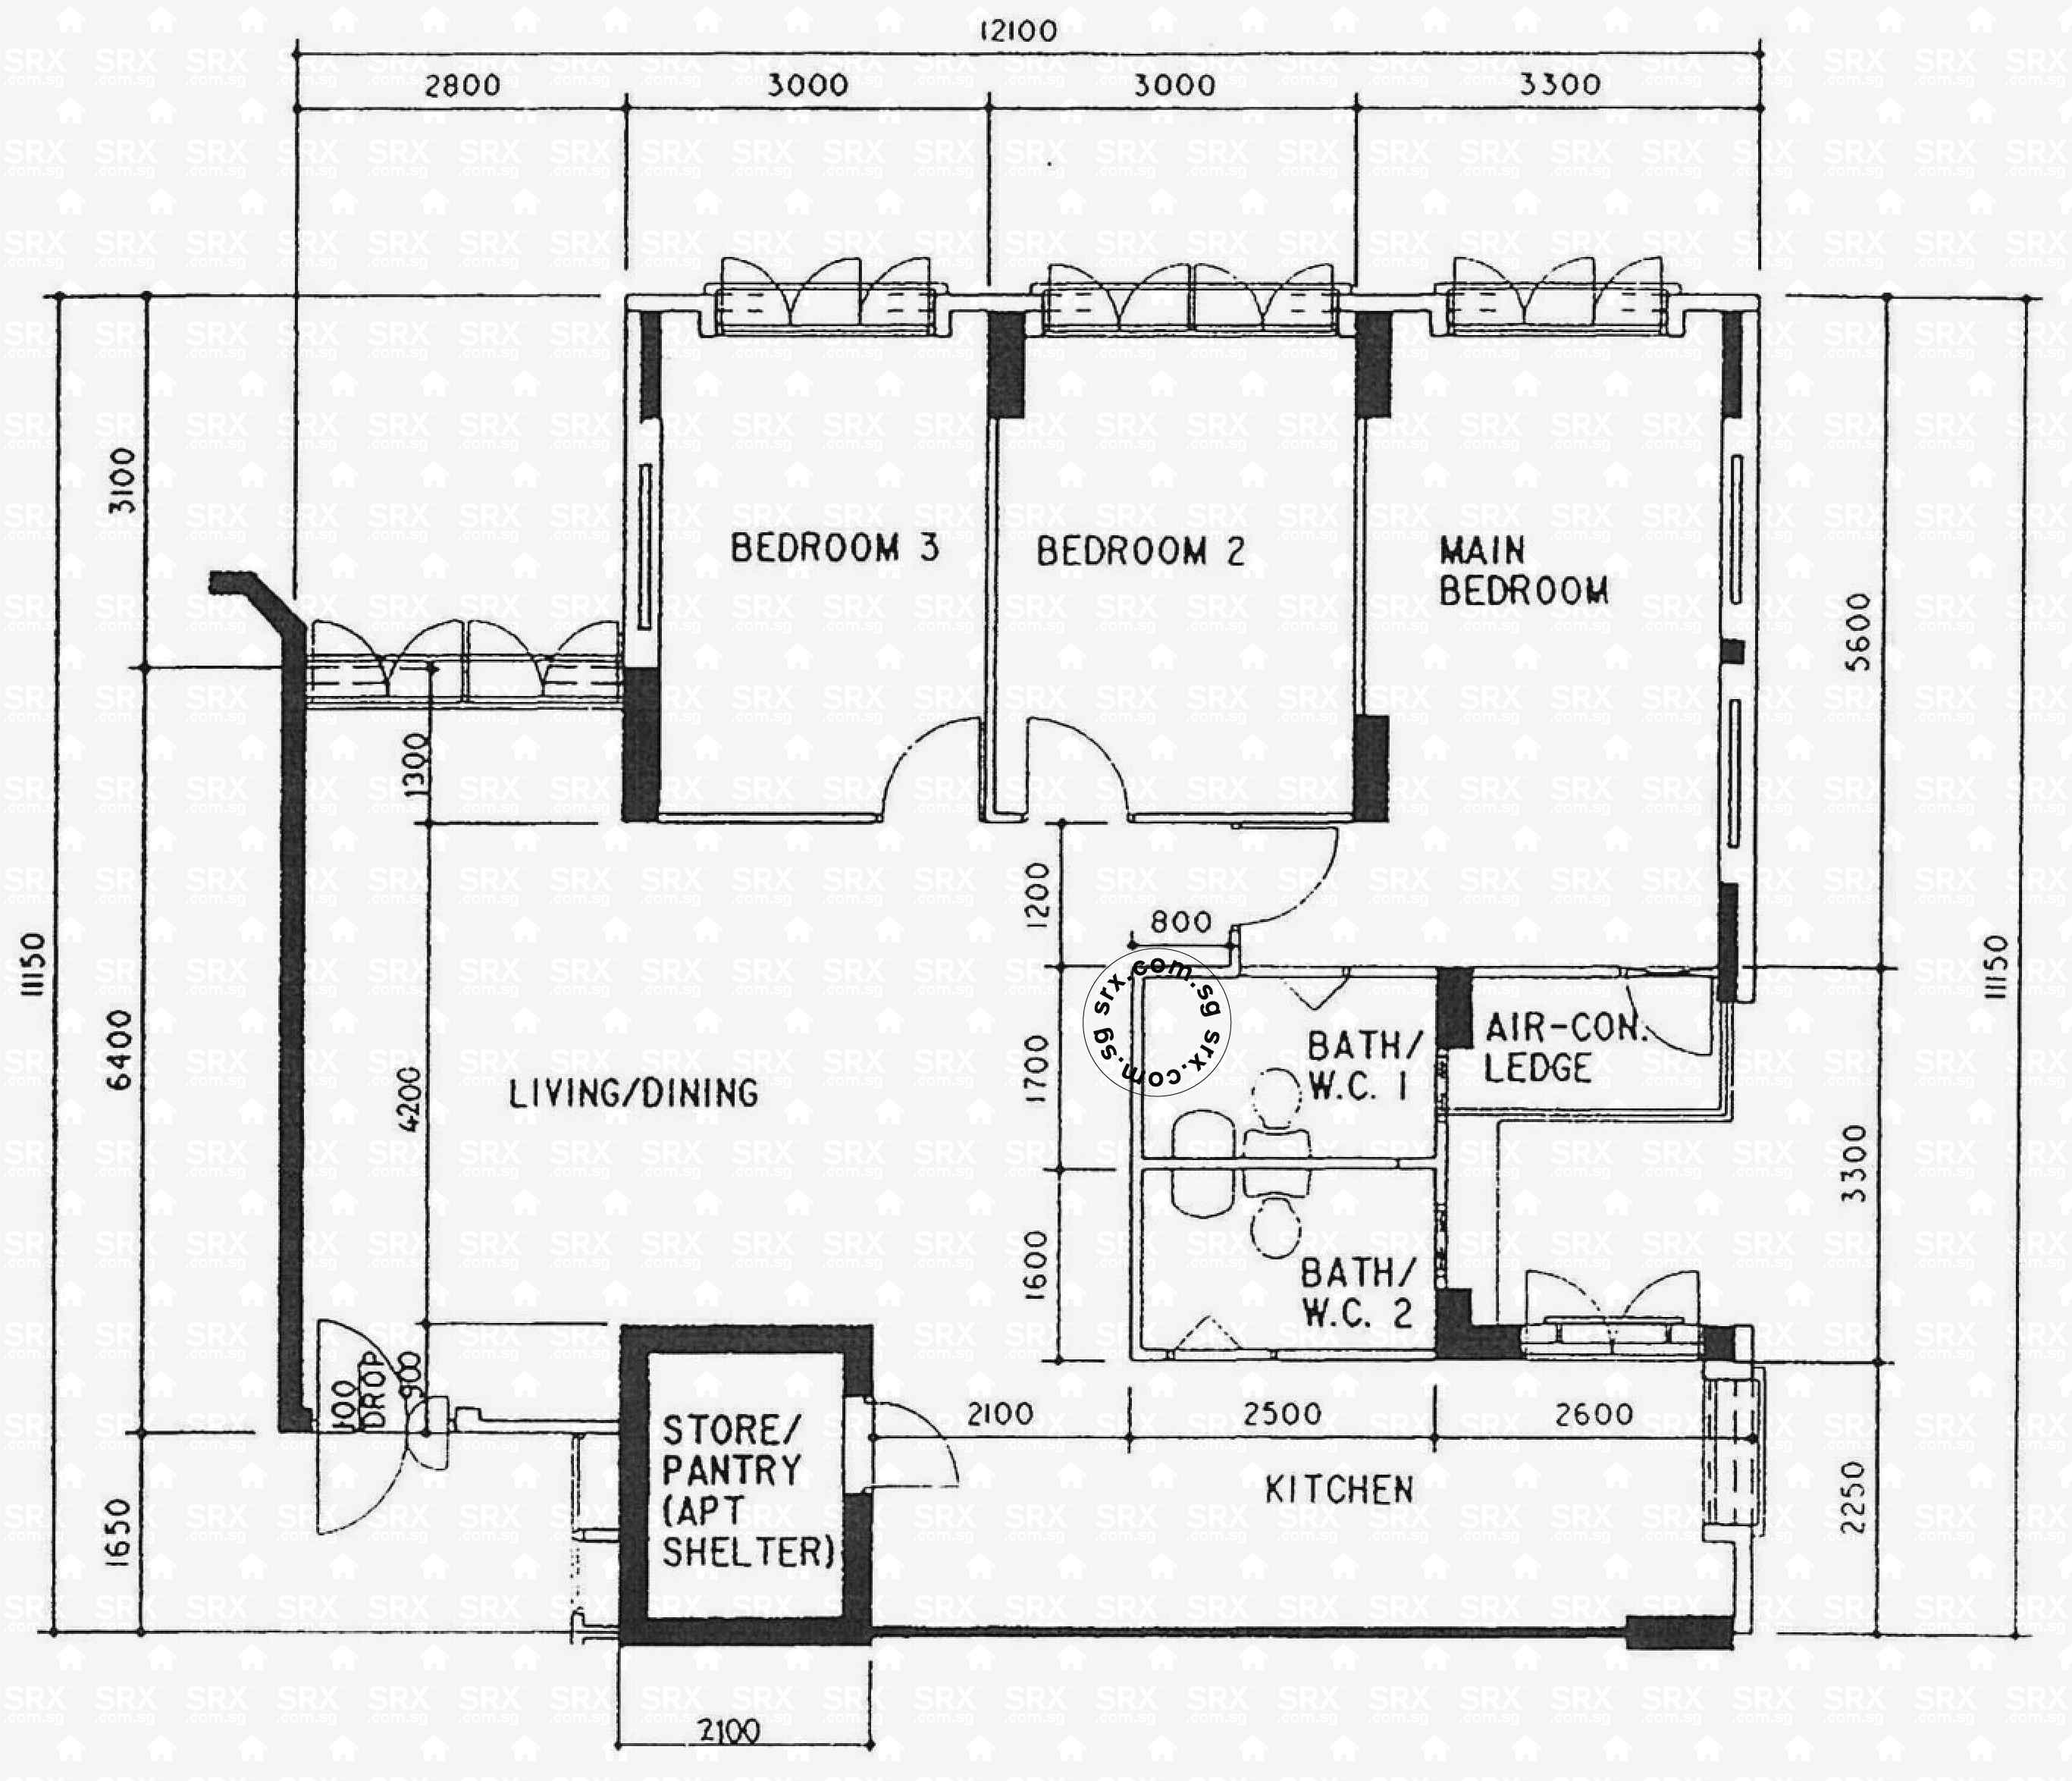 Floor Plans For Canberra Road Hdb Details Srx Property Schematic Levellvl 06